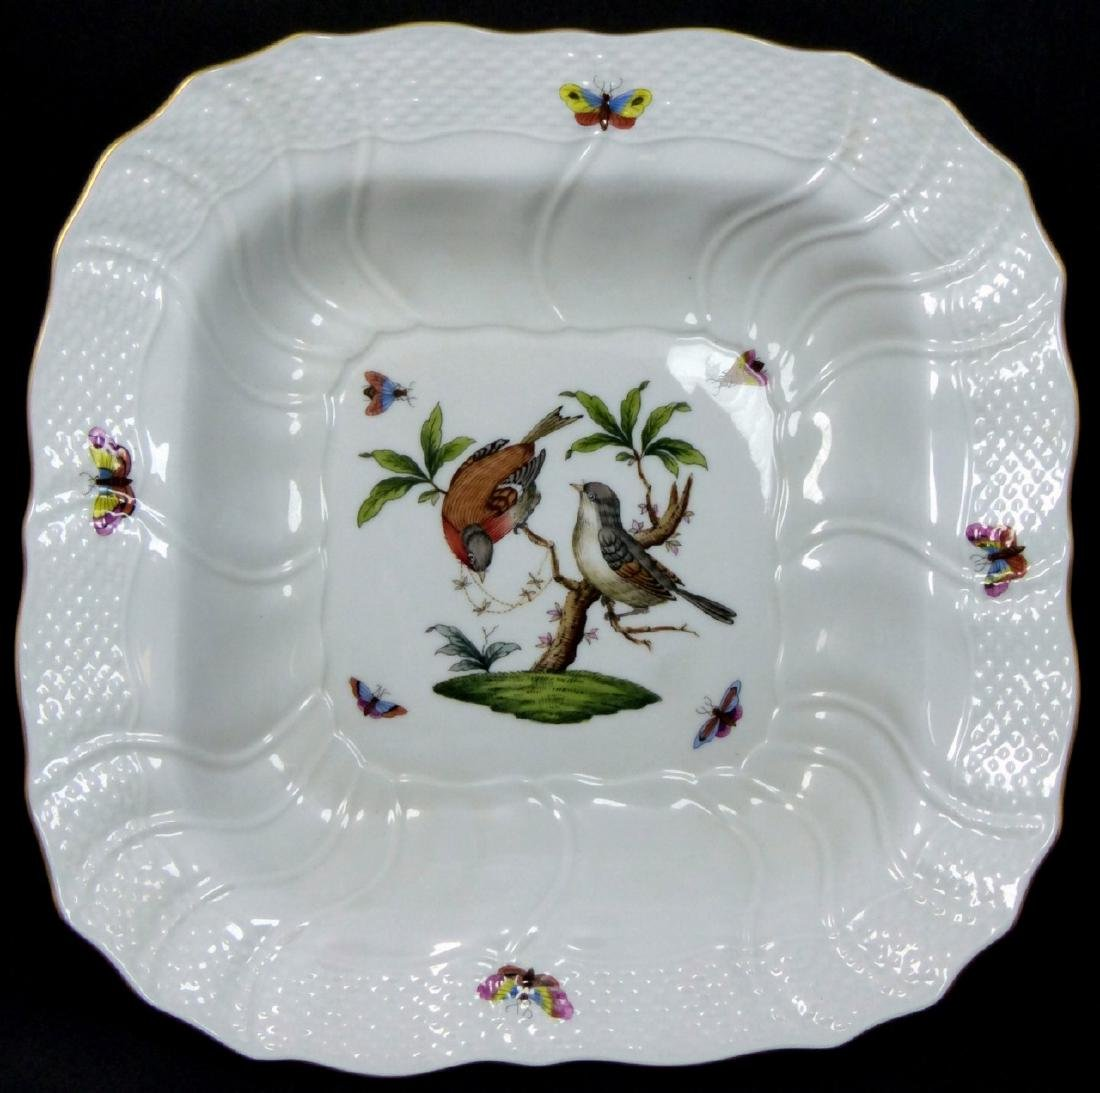 HEREND 'ROTHSCHILD' PORCELAIN SERVING BOWL